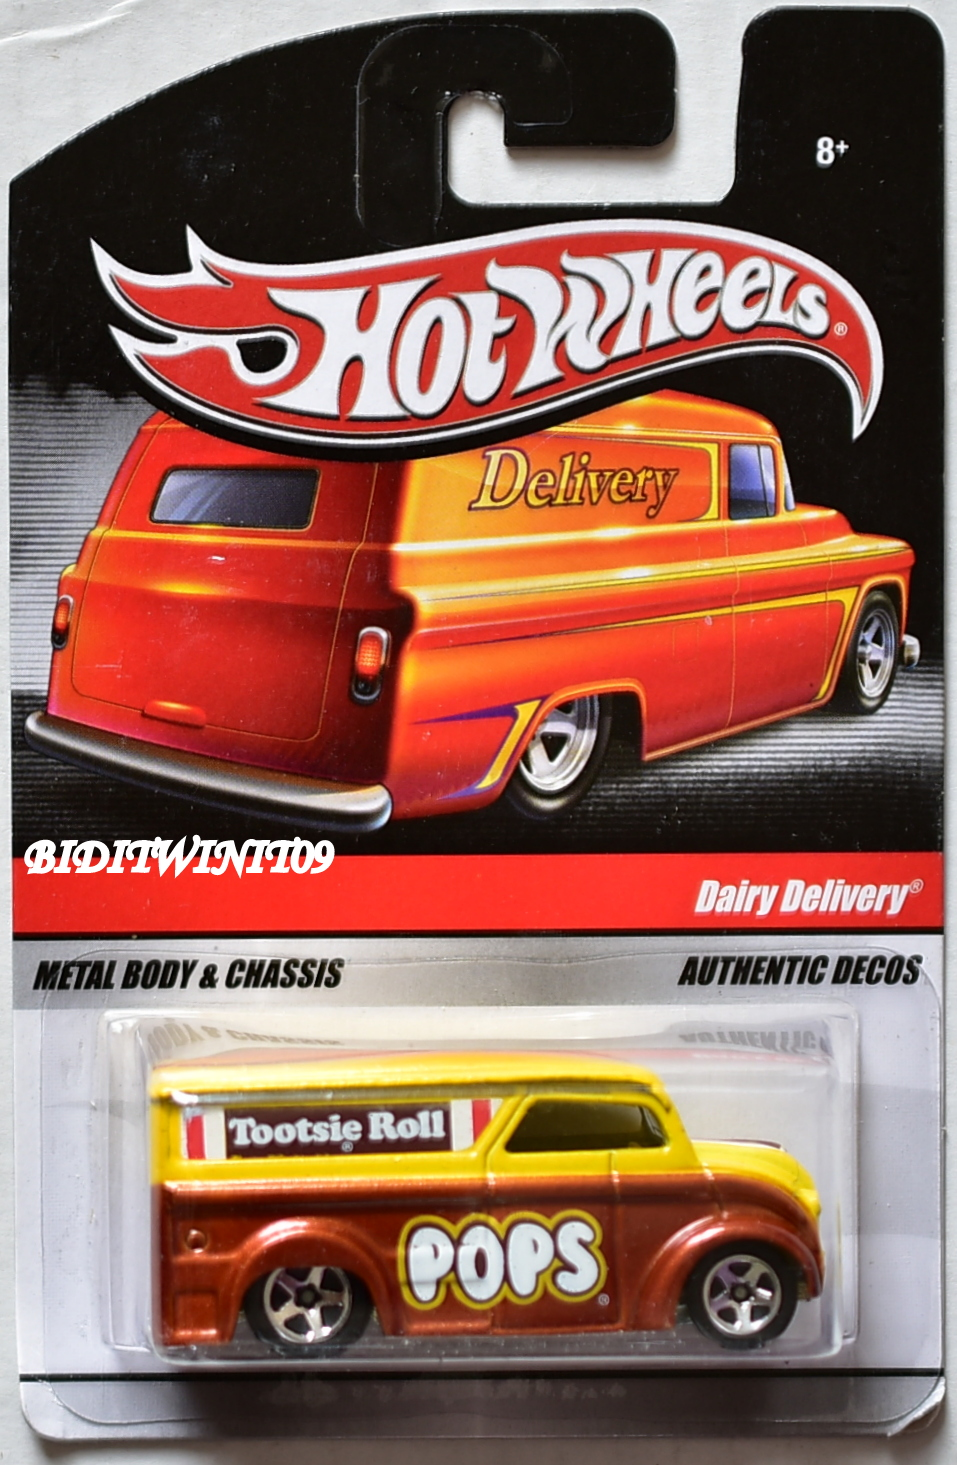 HOT WHEELS DELIVERY DAIRY DELIVERY TOOTSIE ROLL POPS E+